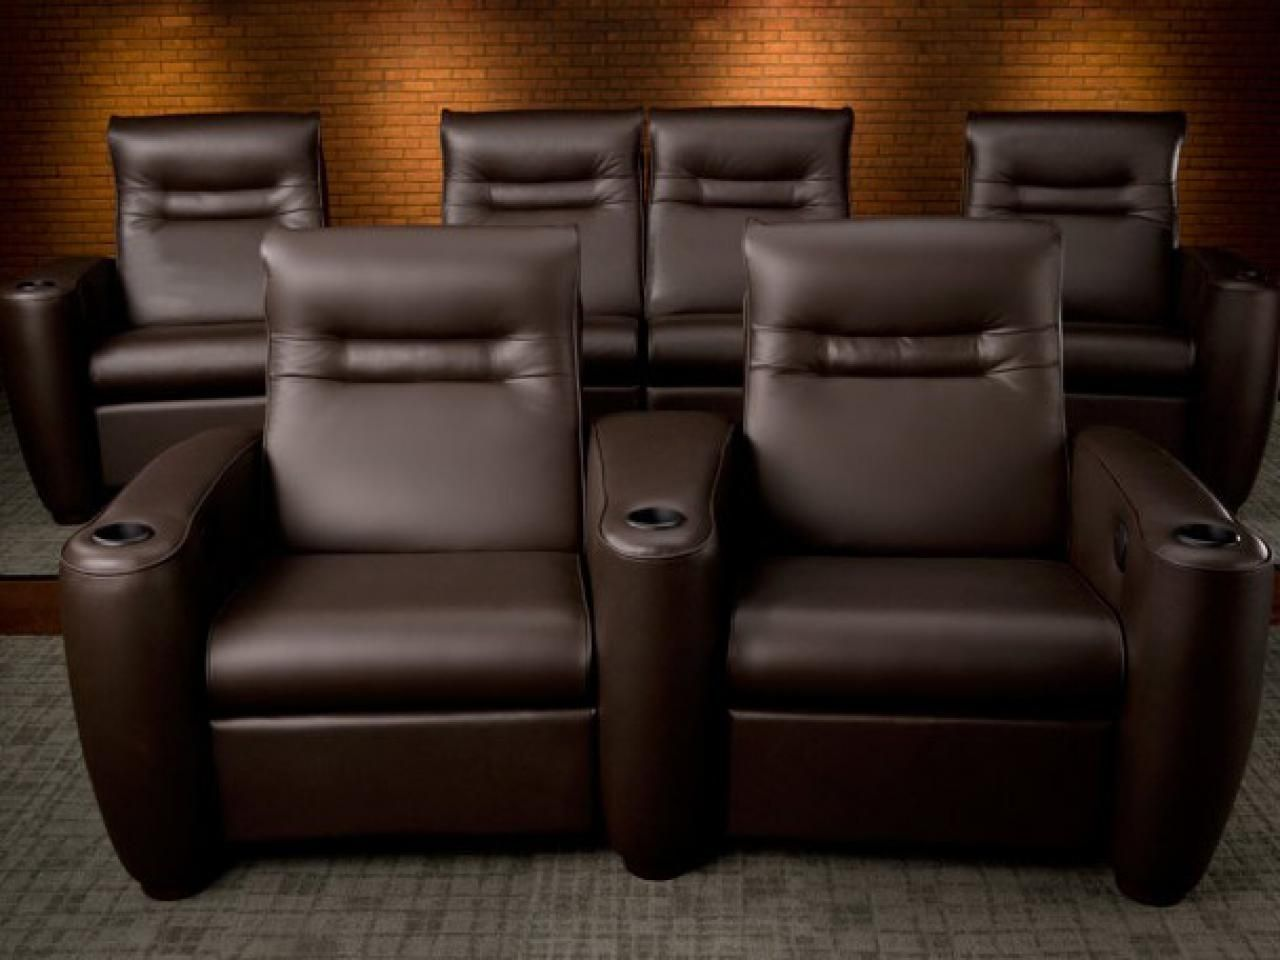 Choosing Home Theater Products Remodeling Ideas For Basement Wiring Basements Theaters More Hgtv